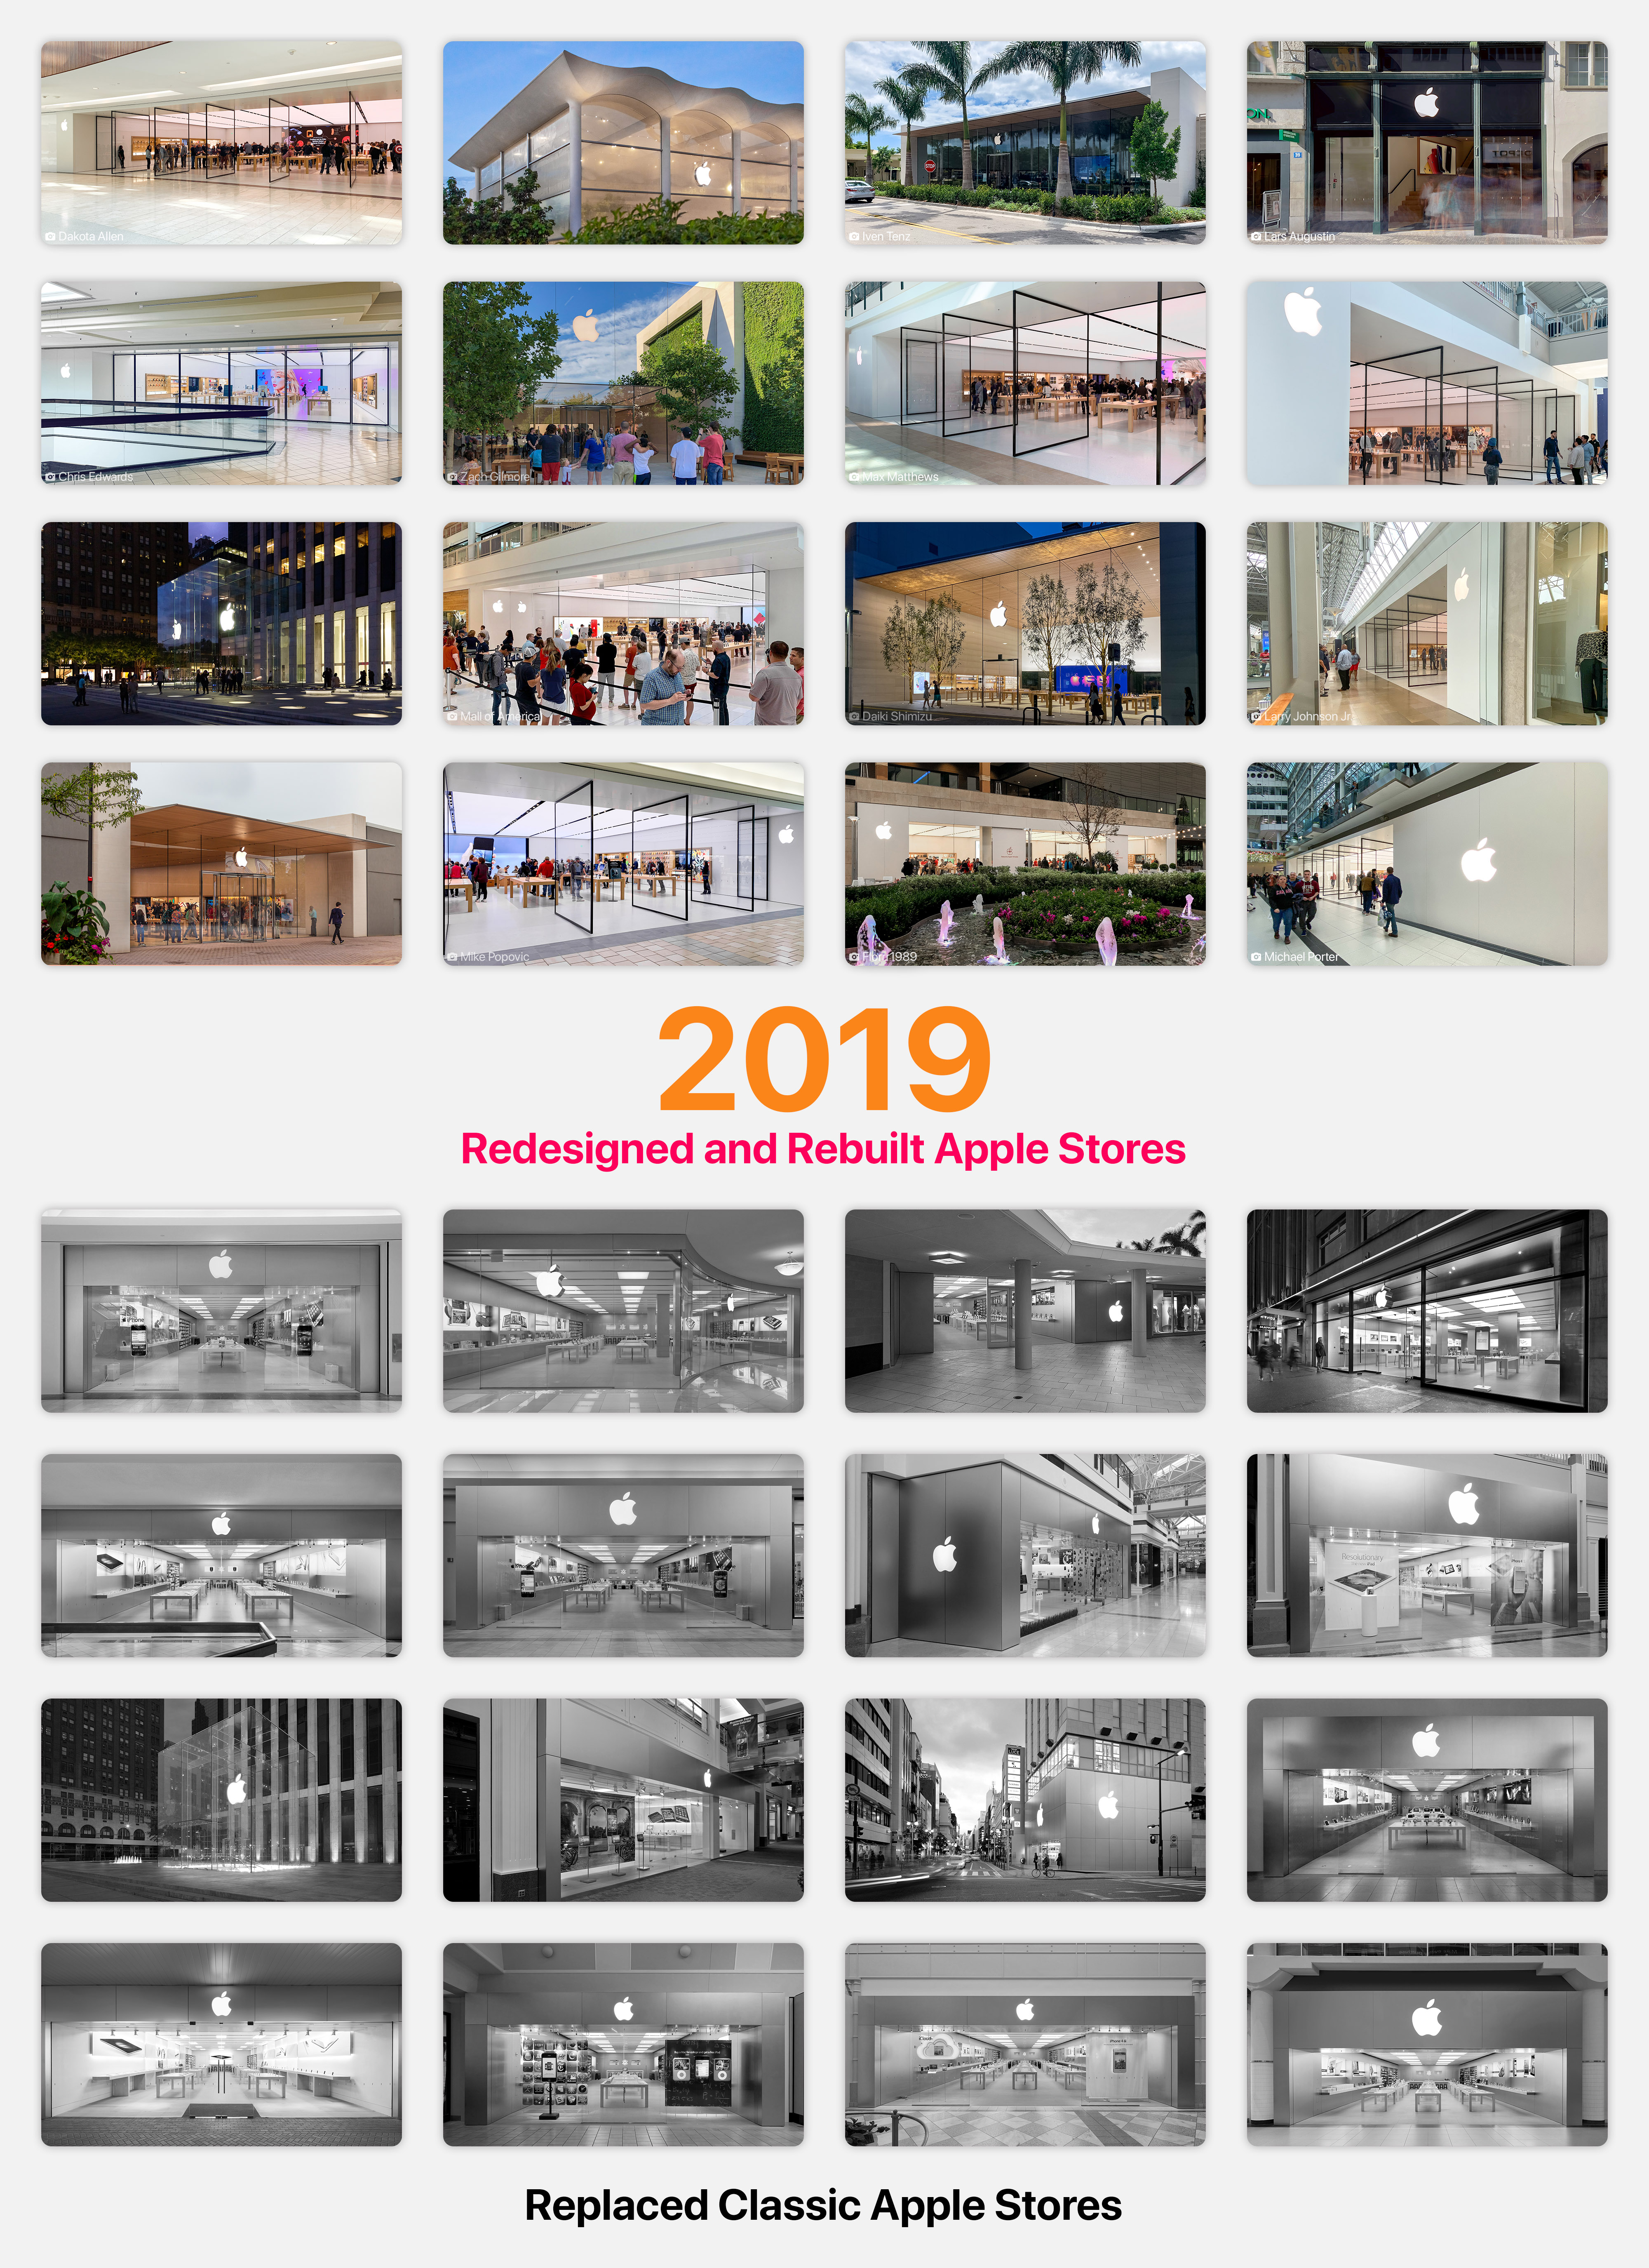 2019 Redesigned and Rebuilt Apple Stores